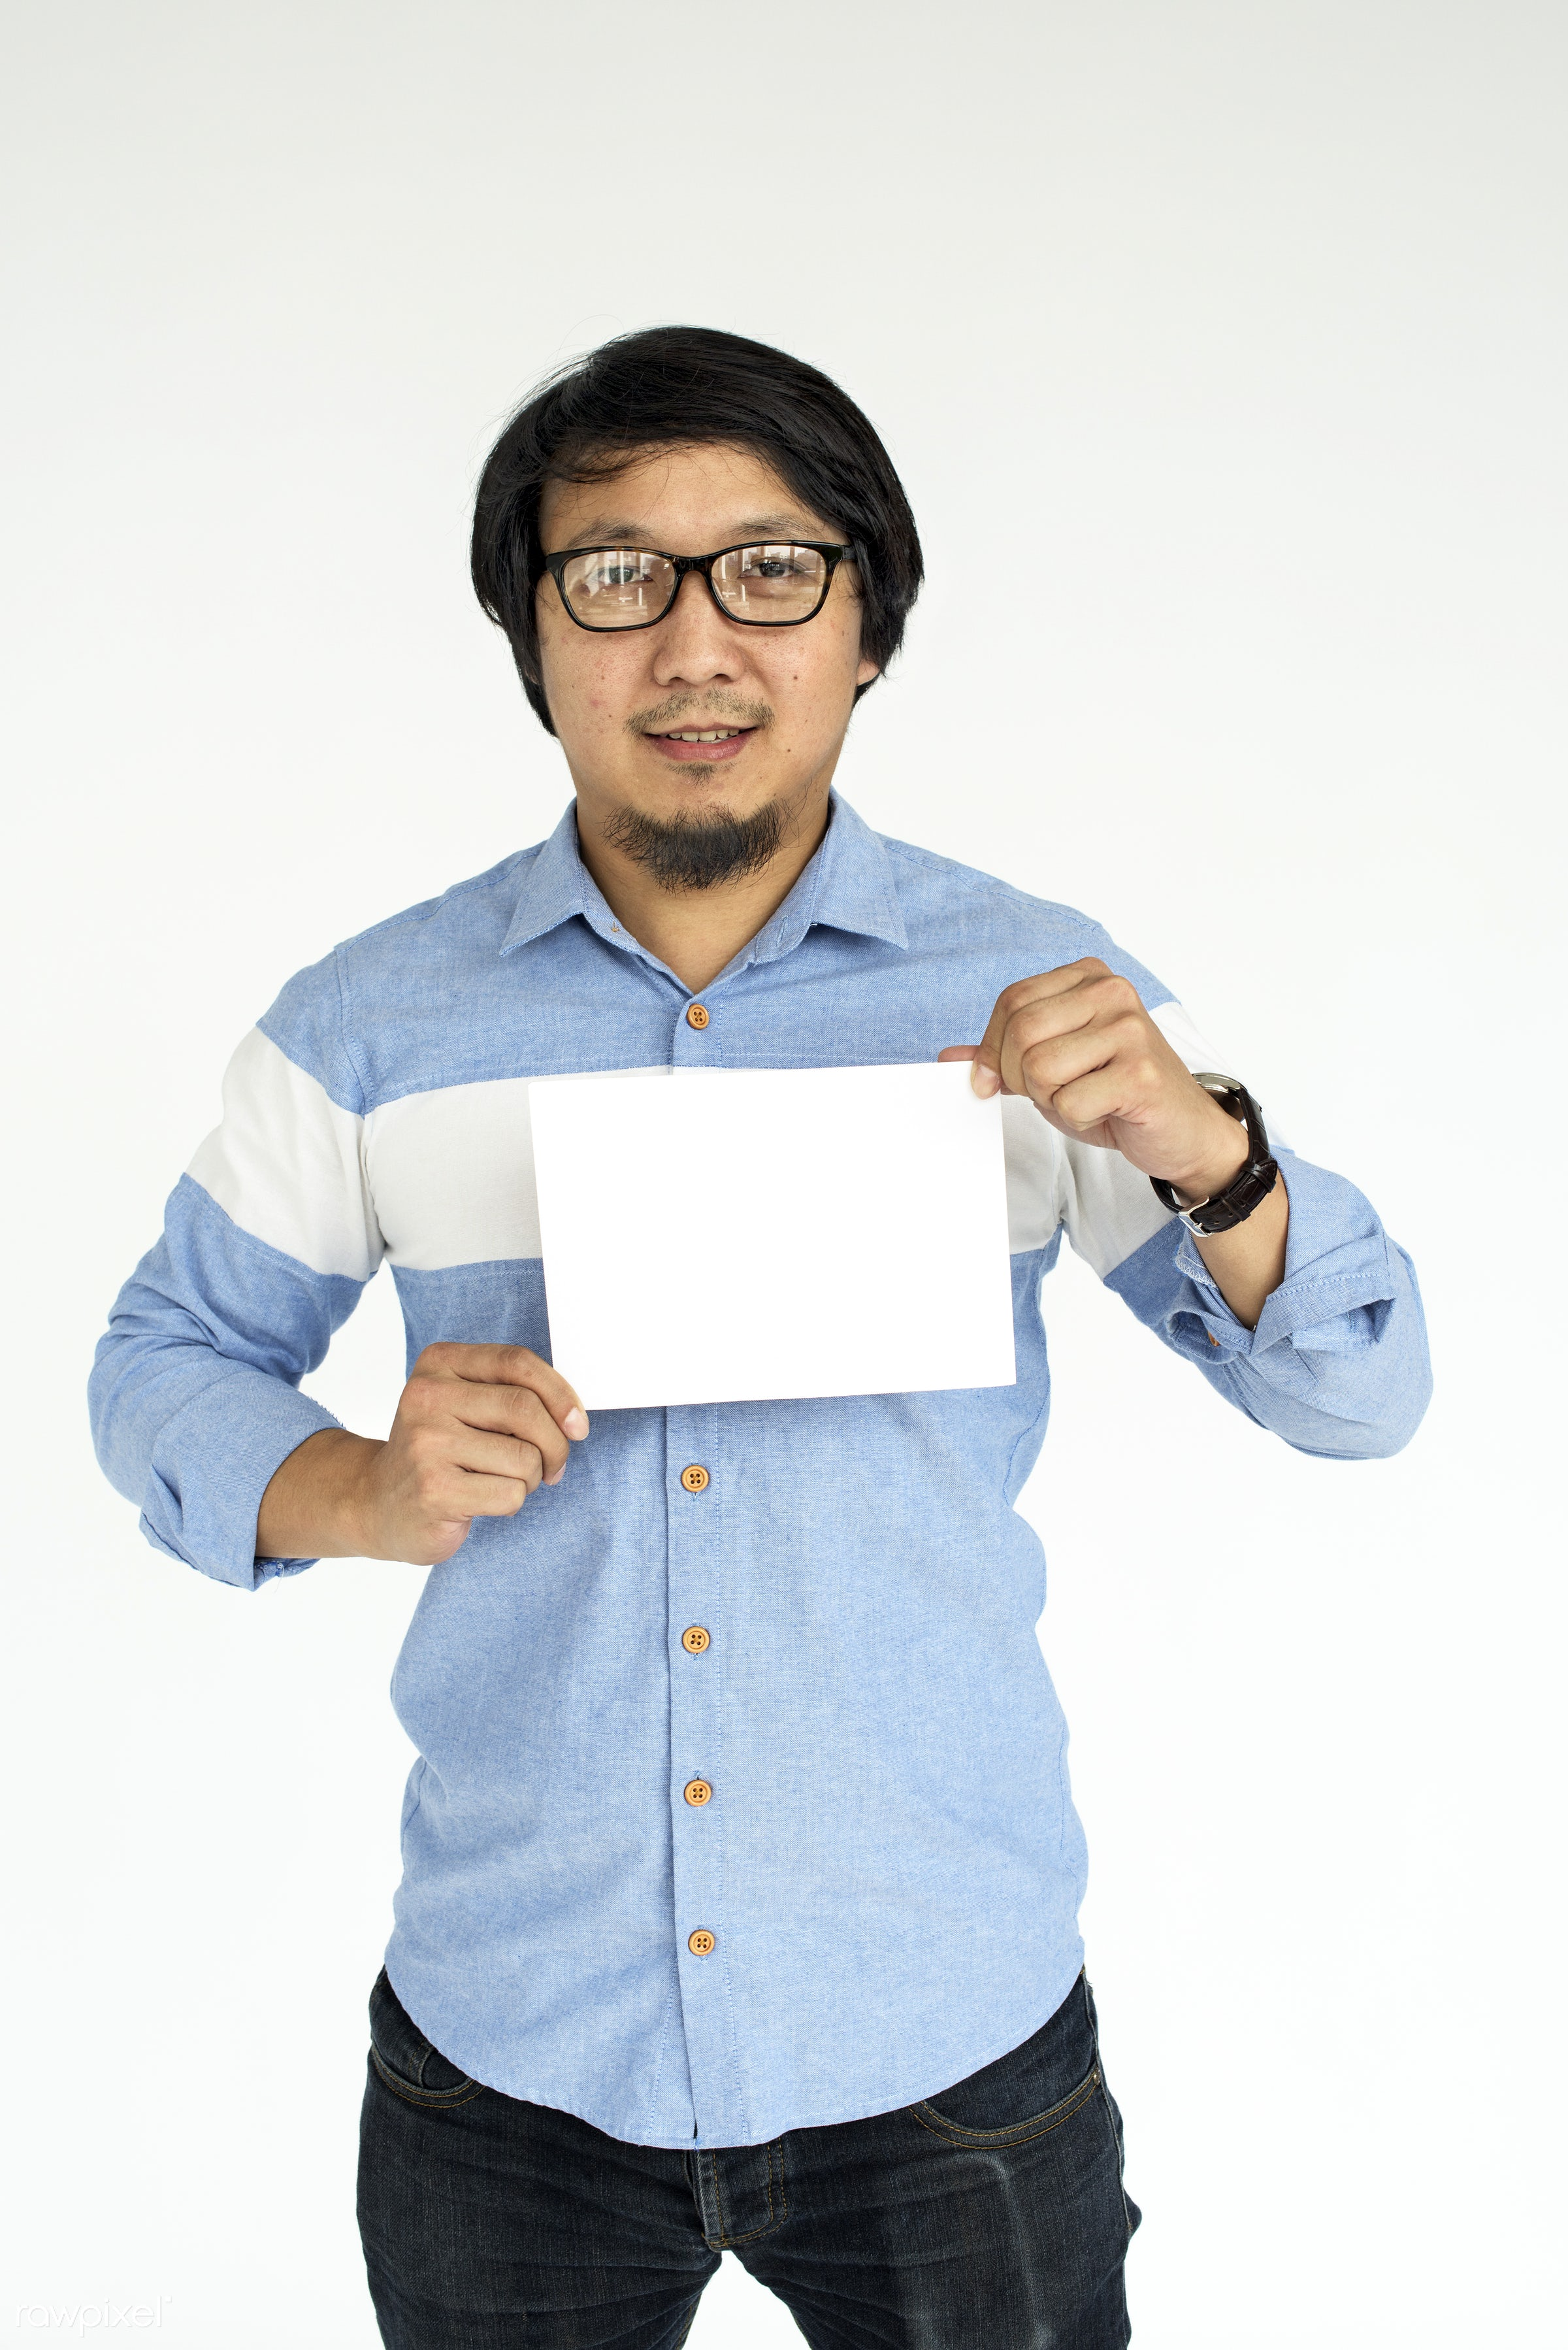 studio, expression, person, model, isolated on white, indoors, people, asian ethnicity, casual, men, cheerful, man, isolated...